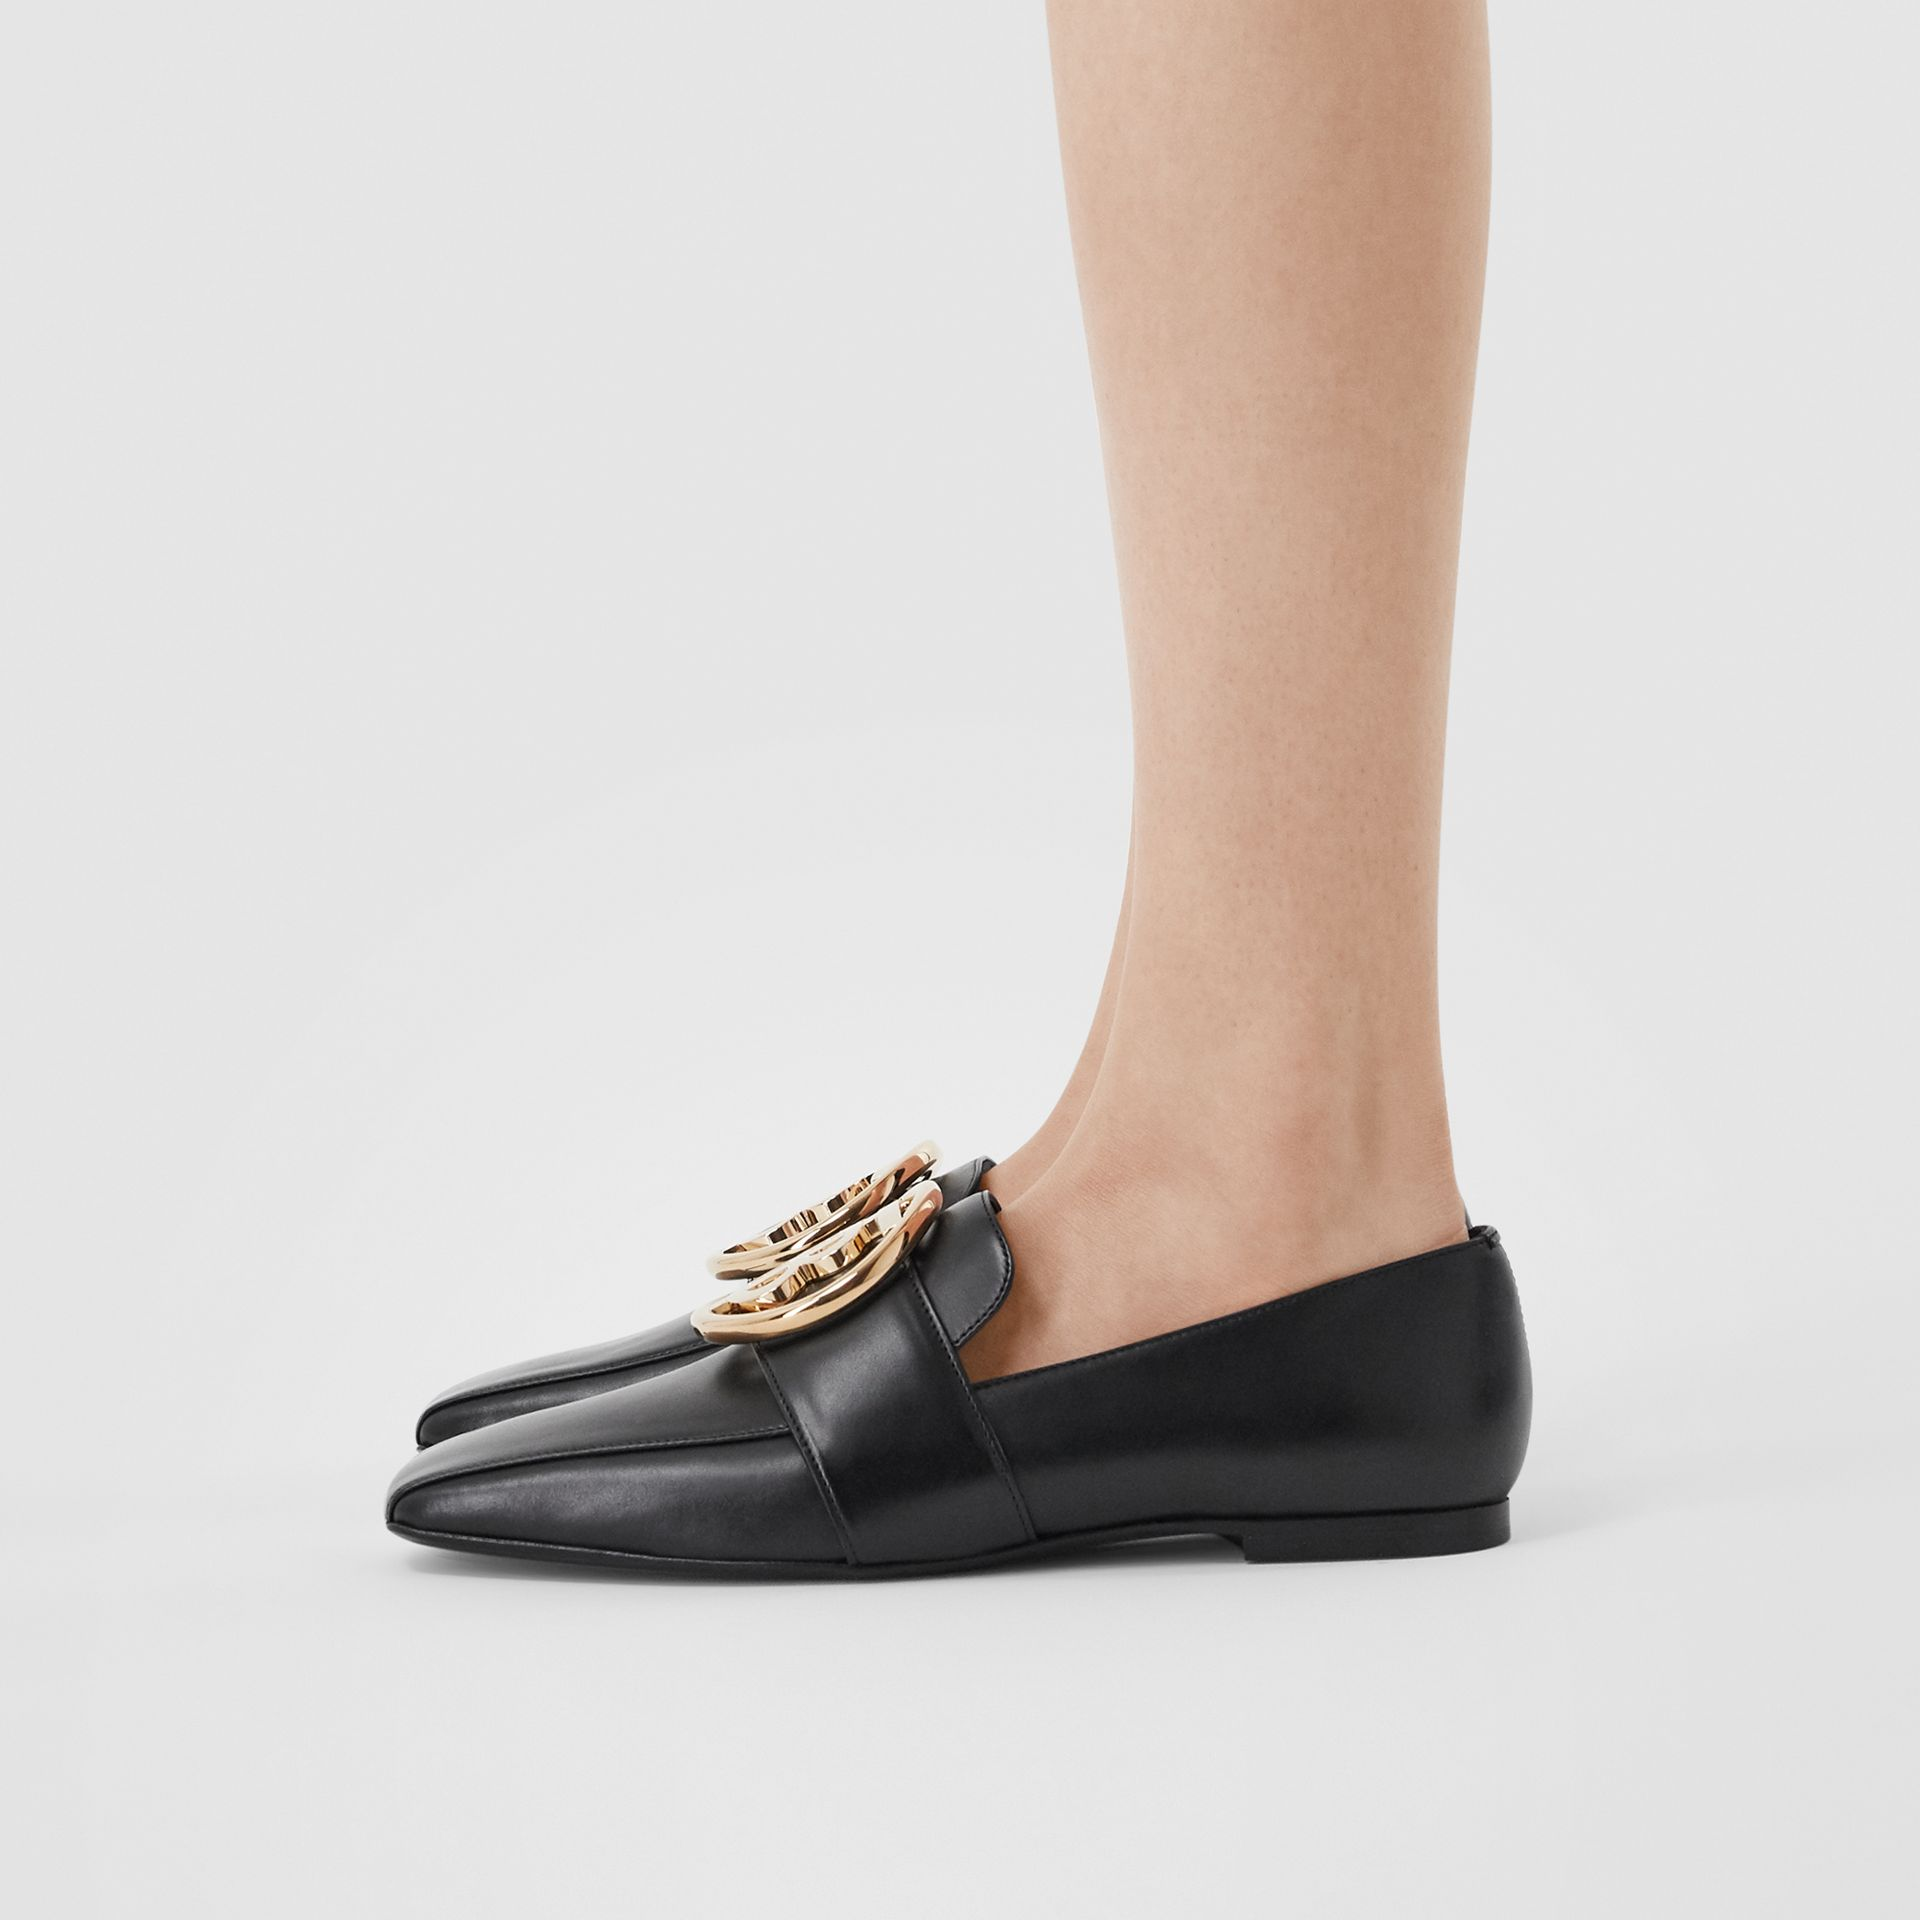 Monogram Motif Leather Loafers in Black - Women | Burberry - gallery image 2